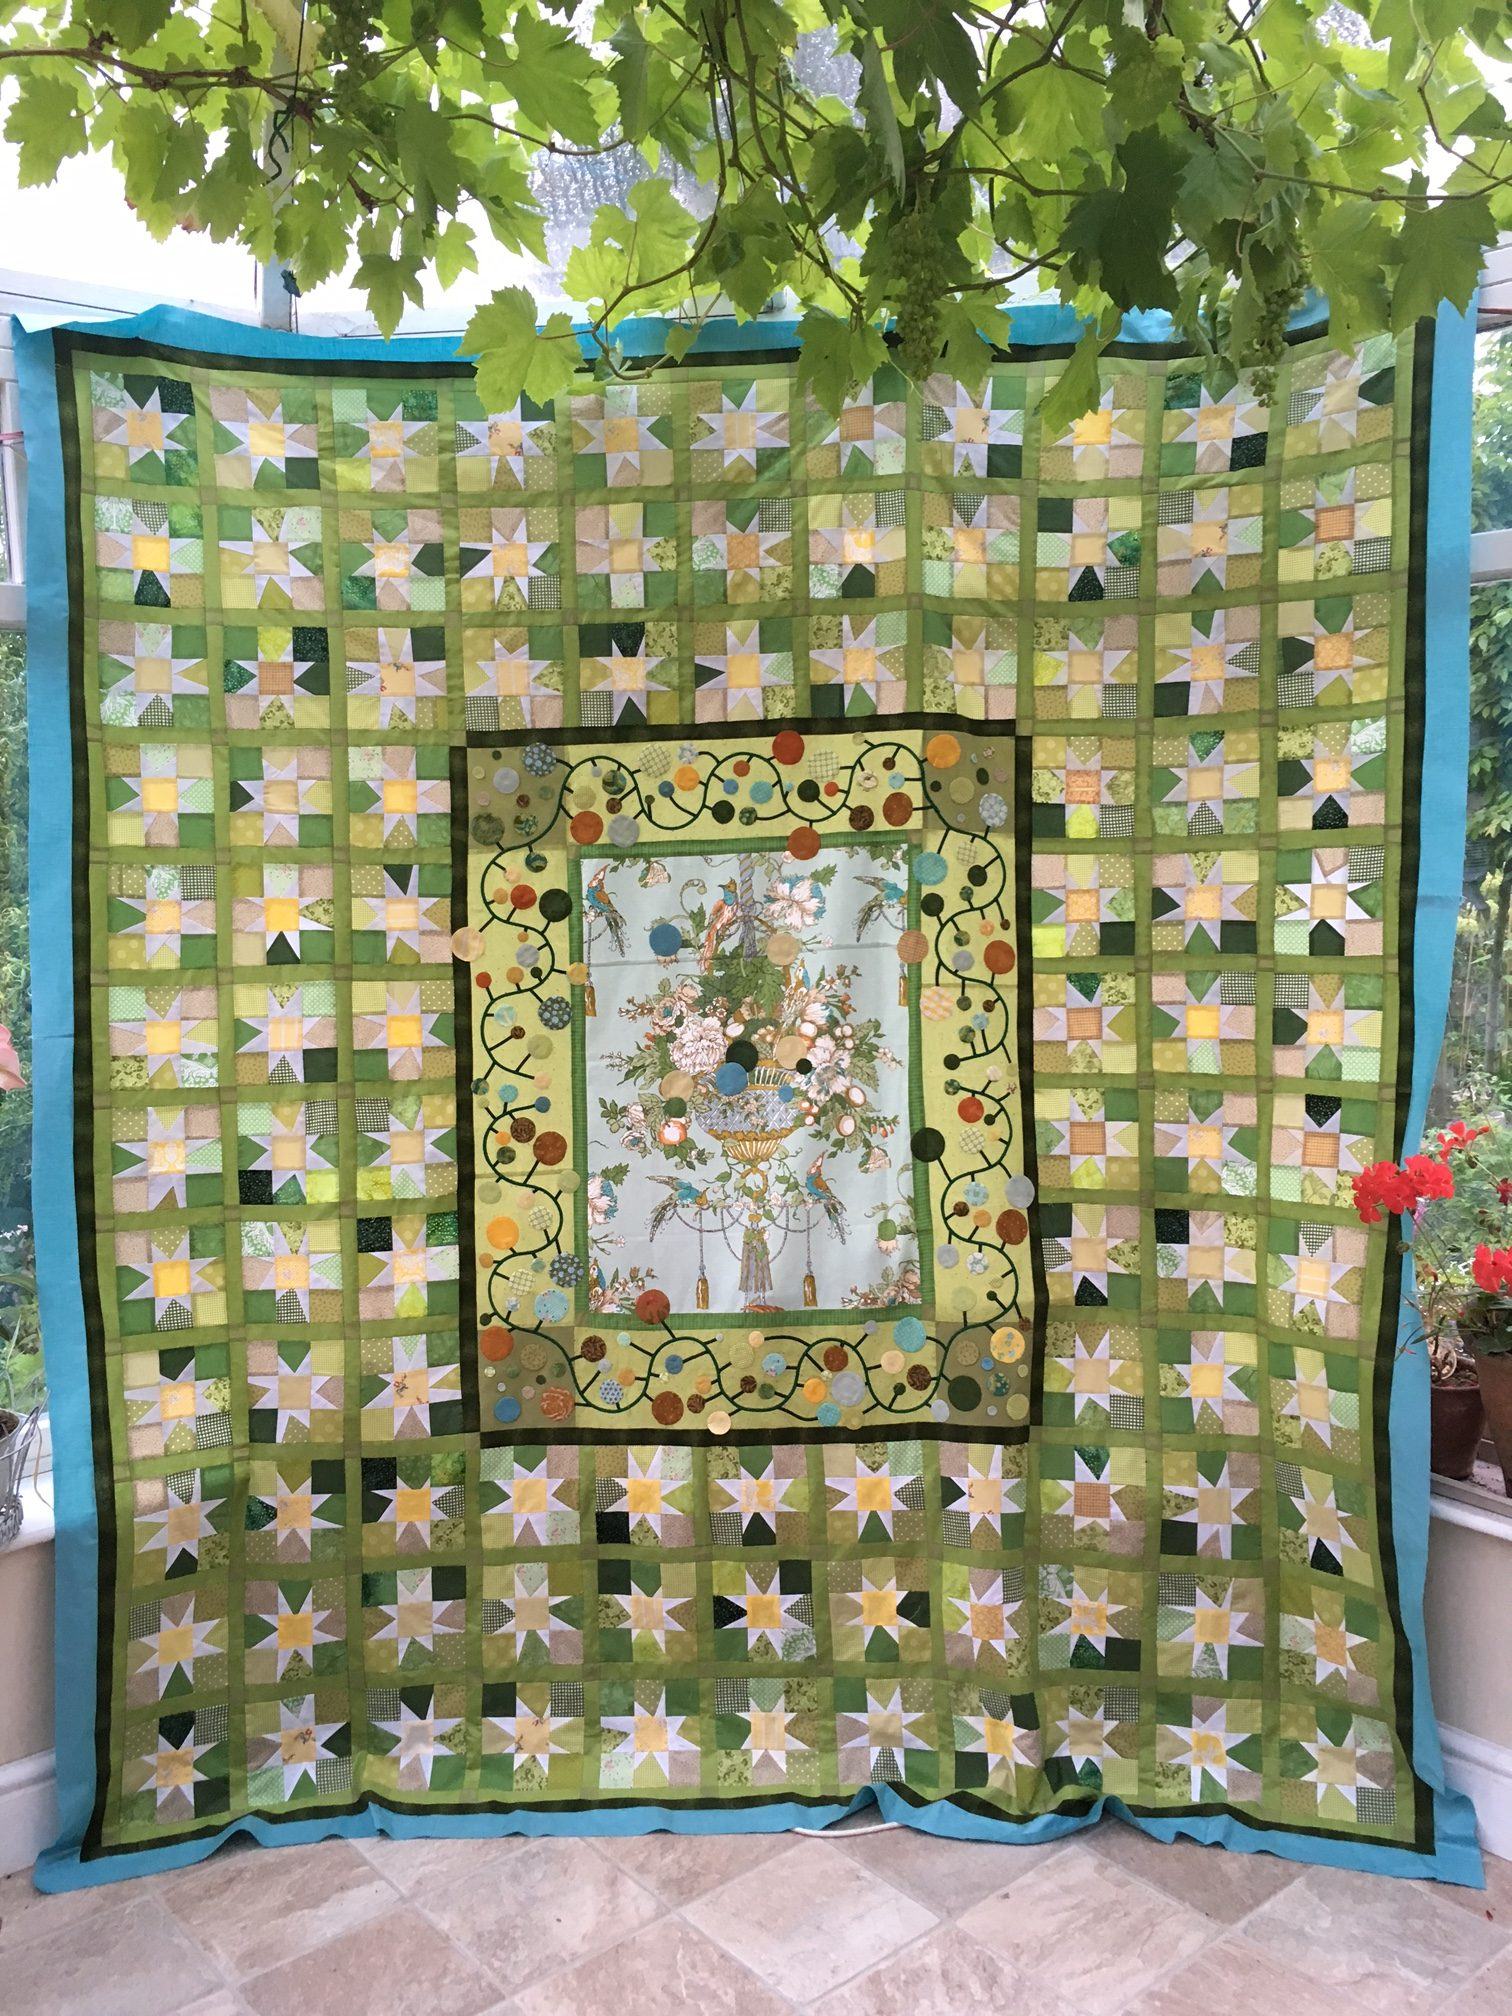 Quilt made by Anne Varley in Spring 2017 and entered into Pantone Greenery competition